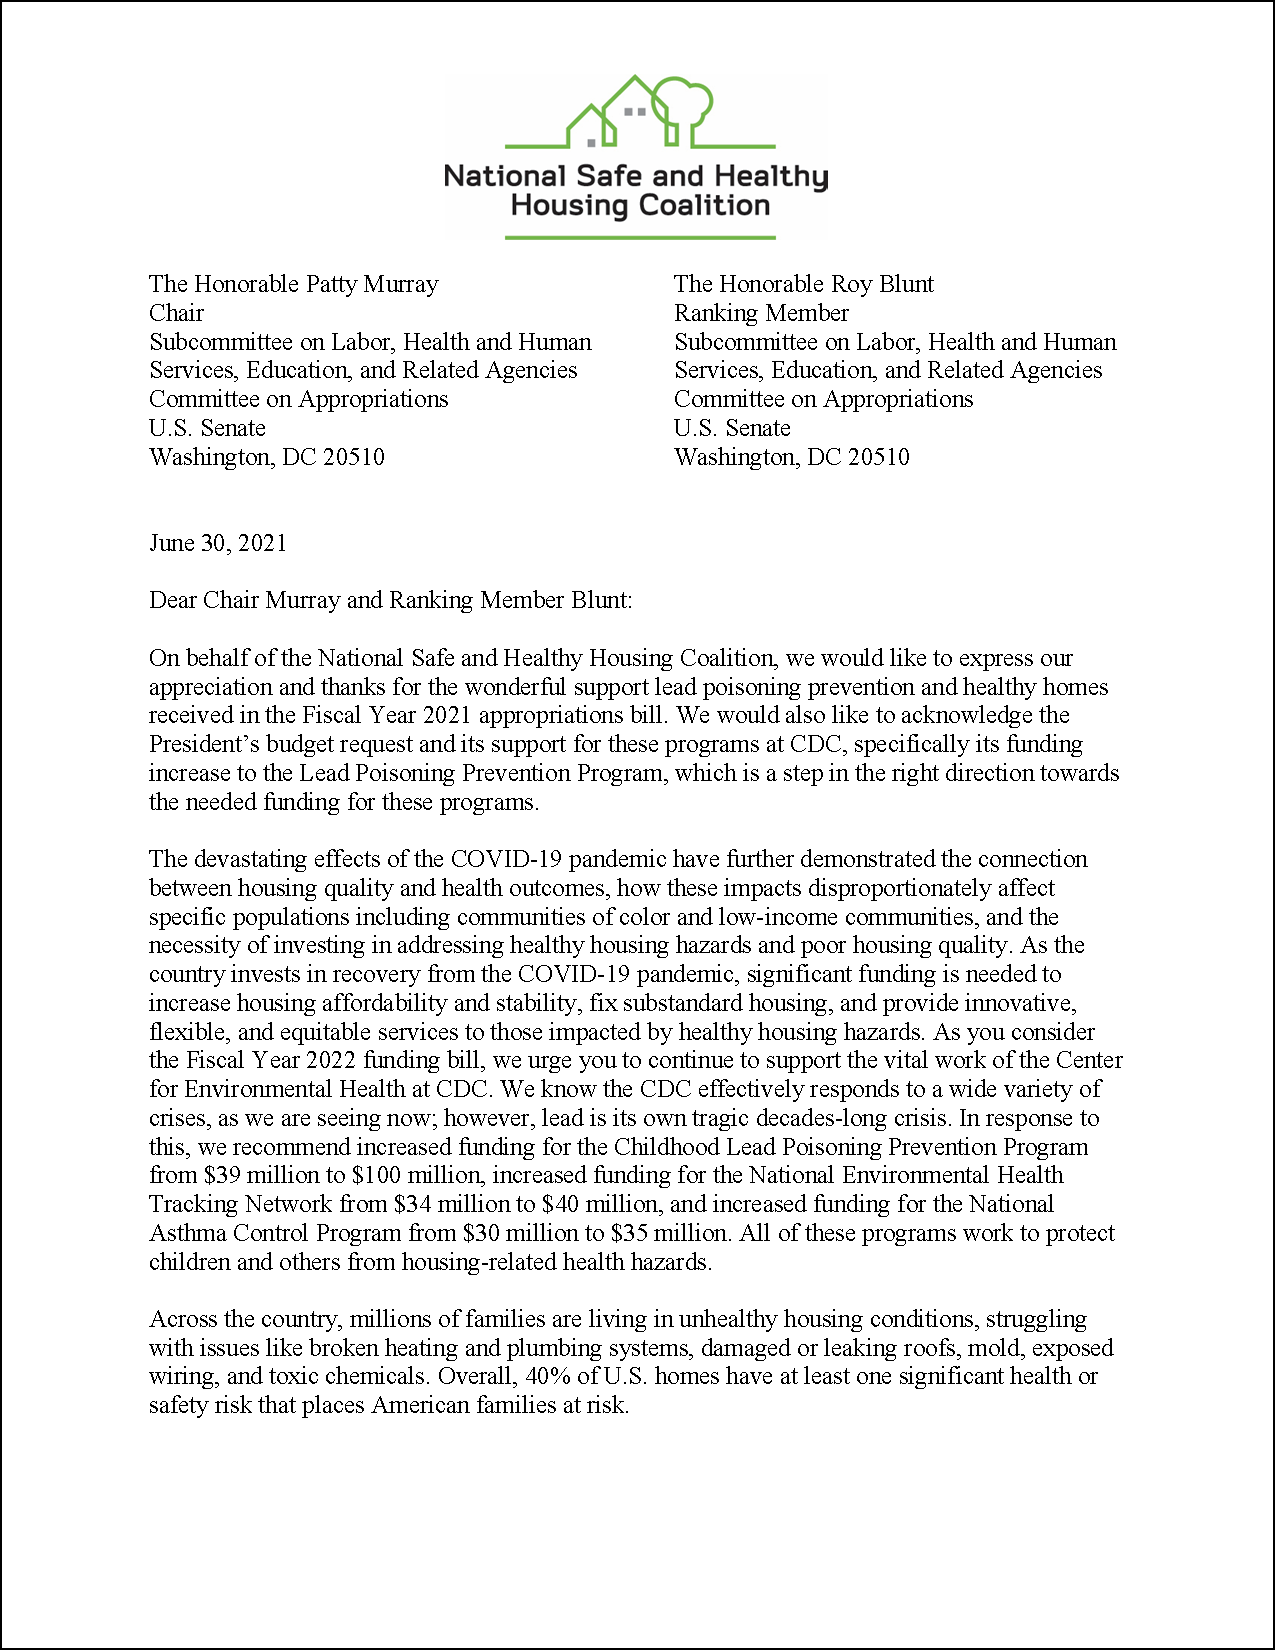 Letter: FY22 Appropriations to U.S. Senate: CDC Programs [2021.06.30] [NSHHC]